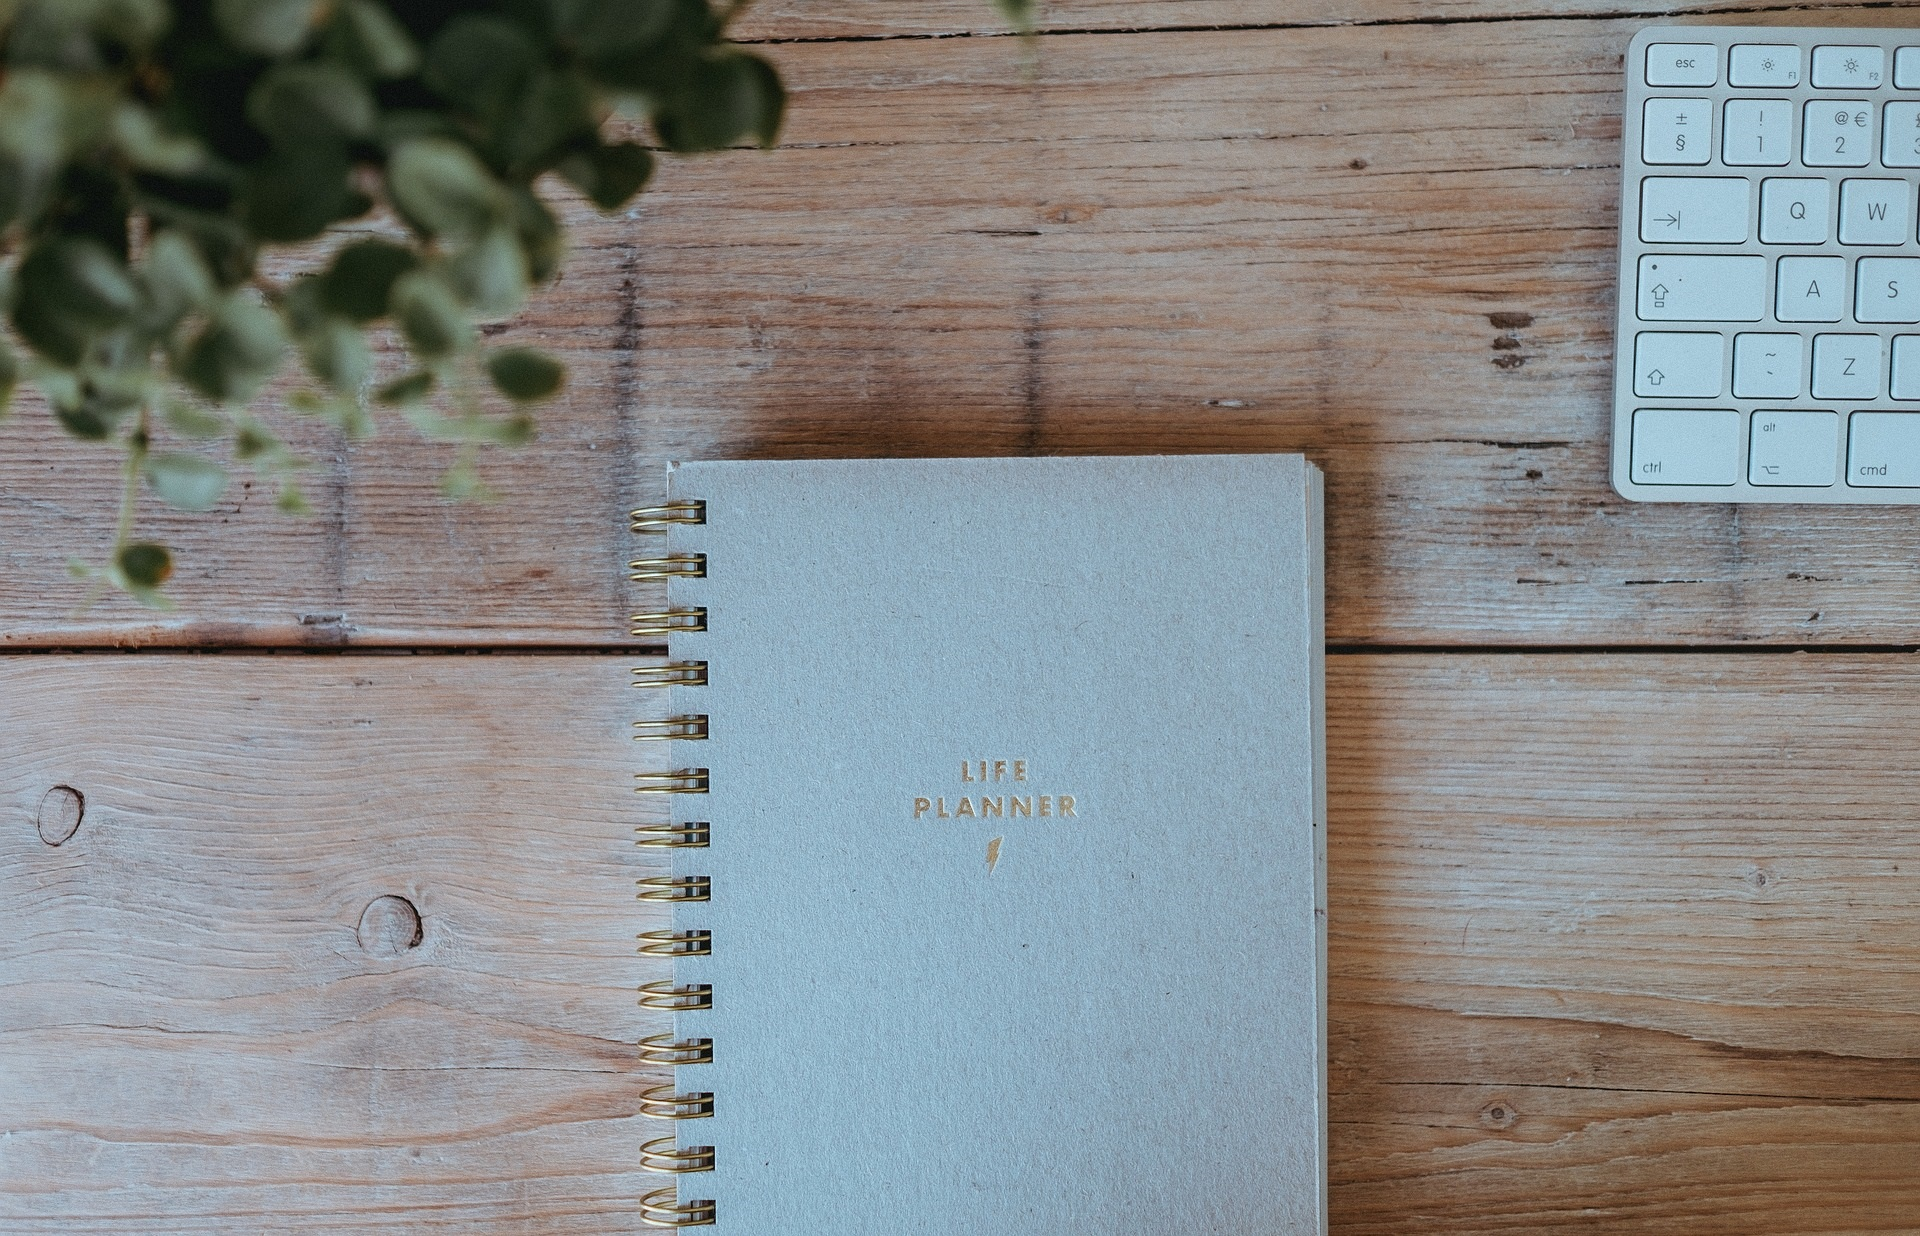 life planner notebook on a wooden table